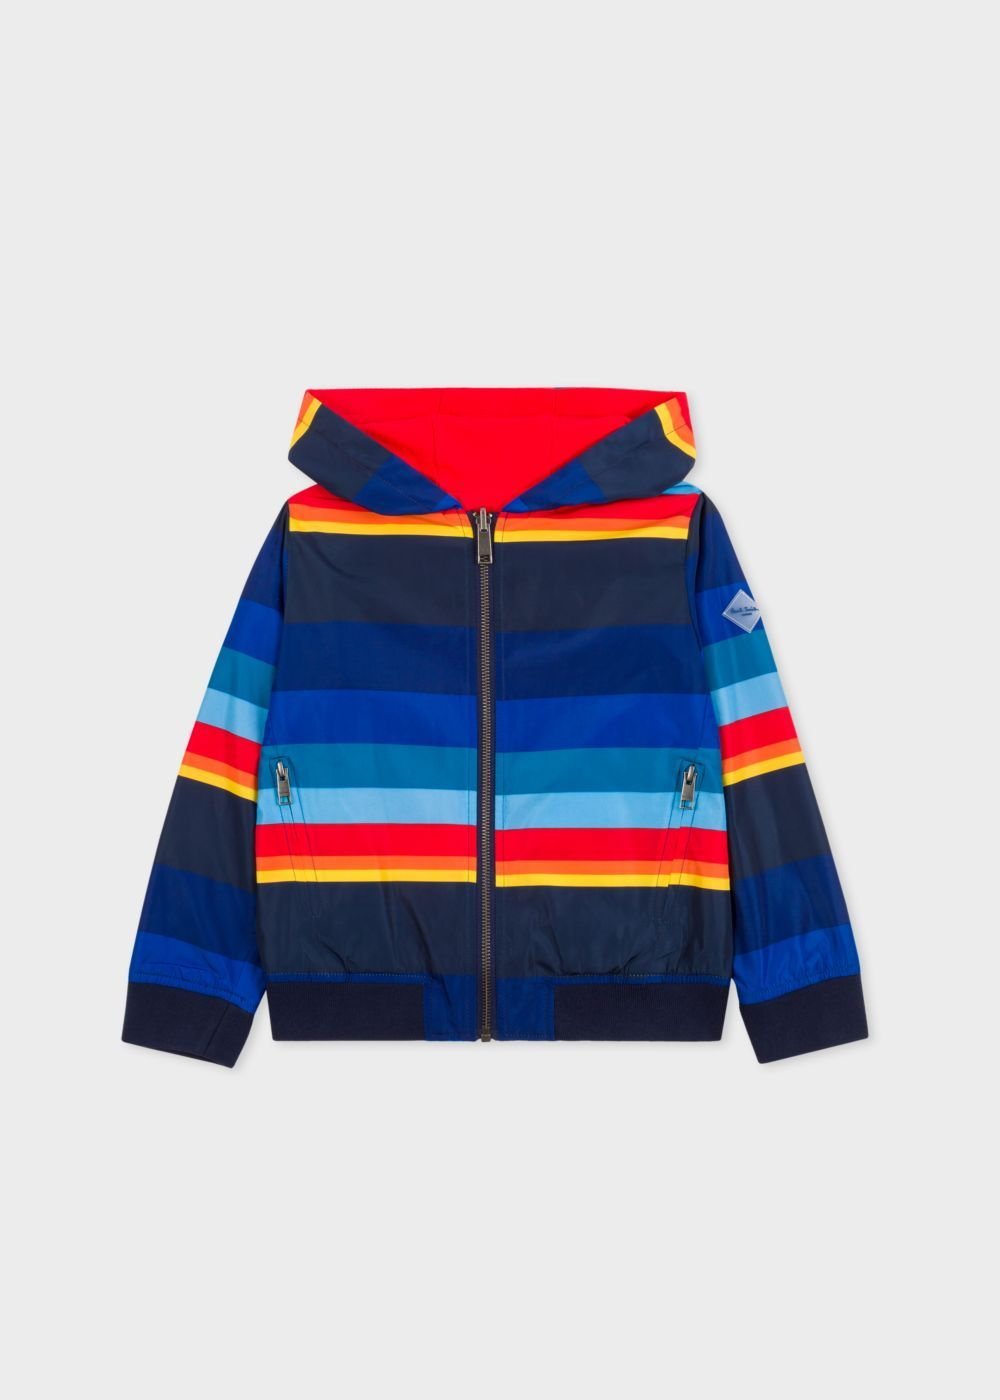 Boys 2 6 Years Multi Coloured Stripe Reversible Jacket Paul Smith Junior Paul Smith Kids Outerwear Clothes Design Reversible Jackets [ 1400 x 1000 Pixel ]